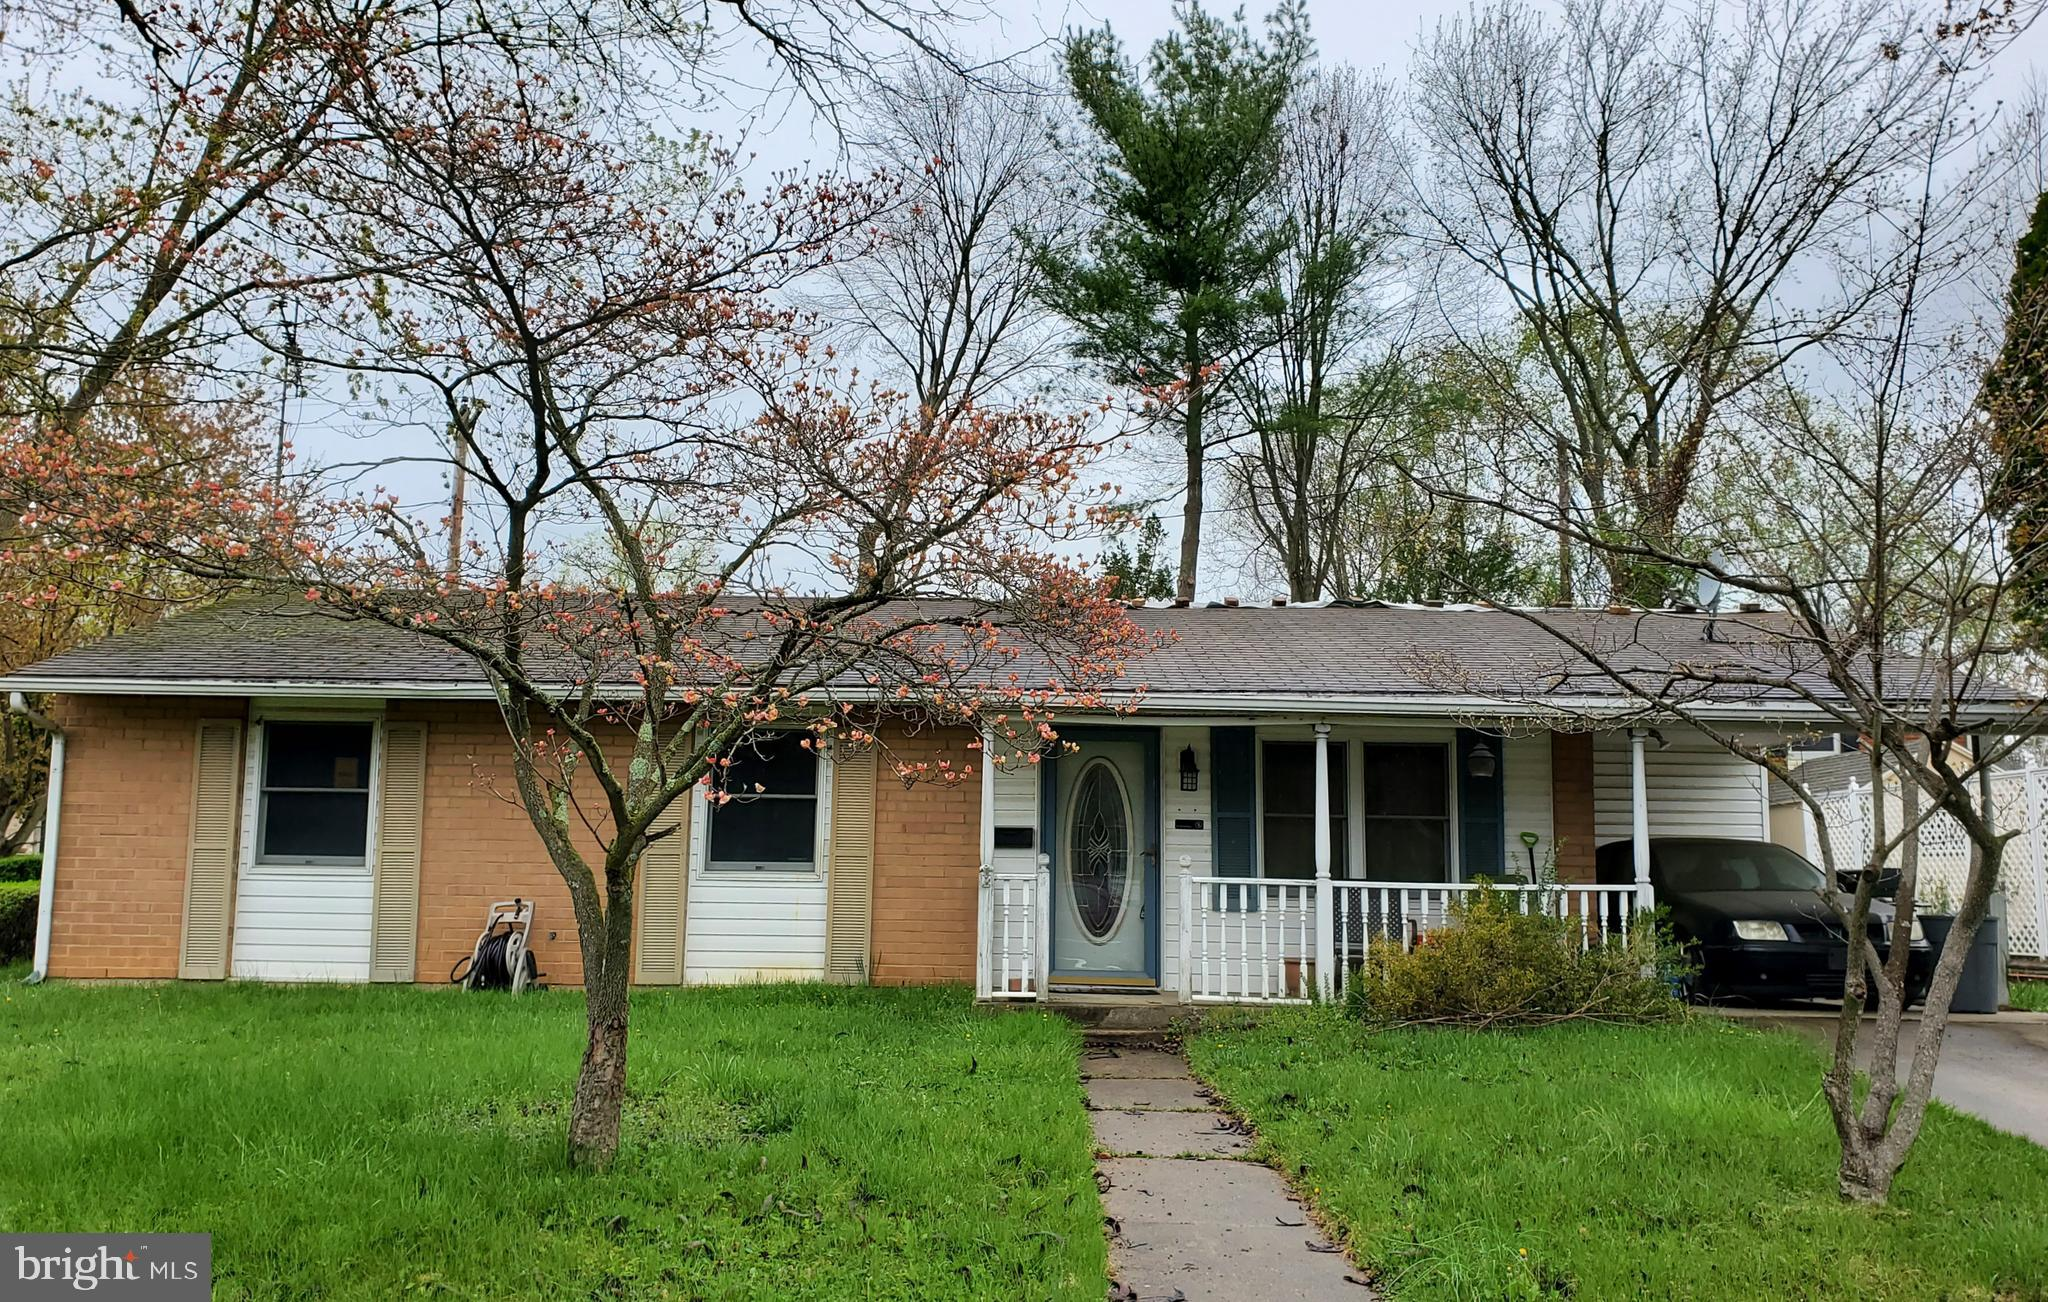 Investor and Contractor Alert! 3 Bedroom Ranch ready for Rehab, orig 1026 sq ft with addition for a